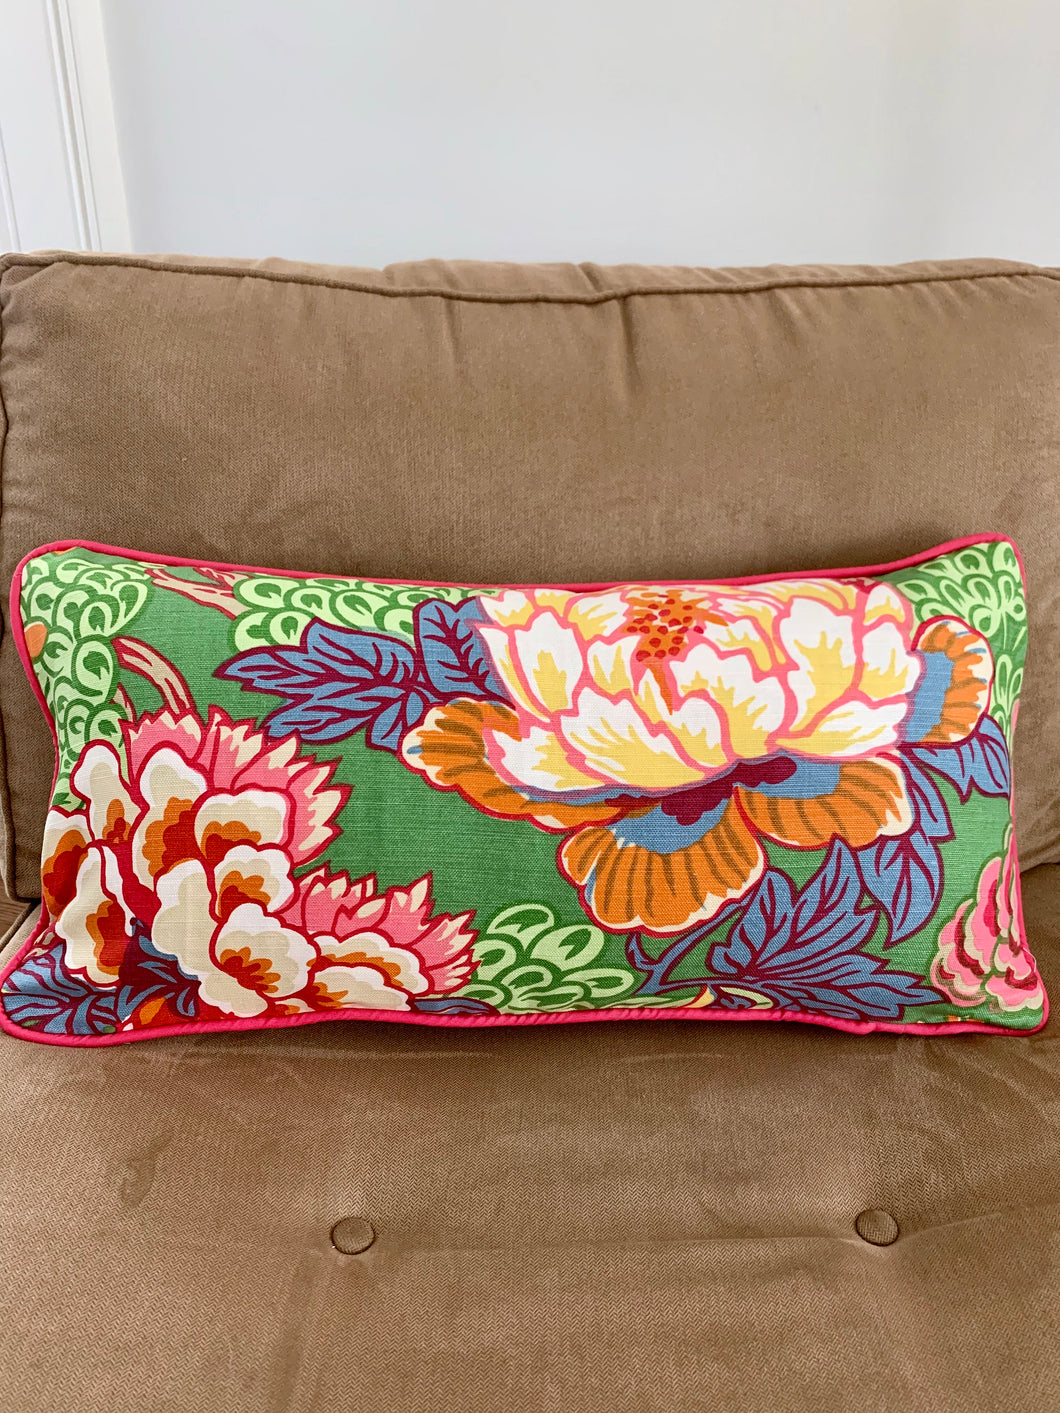 QUICK SHIP Thibaut Honshu Green 12x24 lumbar Only FEW left green pink white pillow cover thibaut pillow pink piping green pink white floral